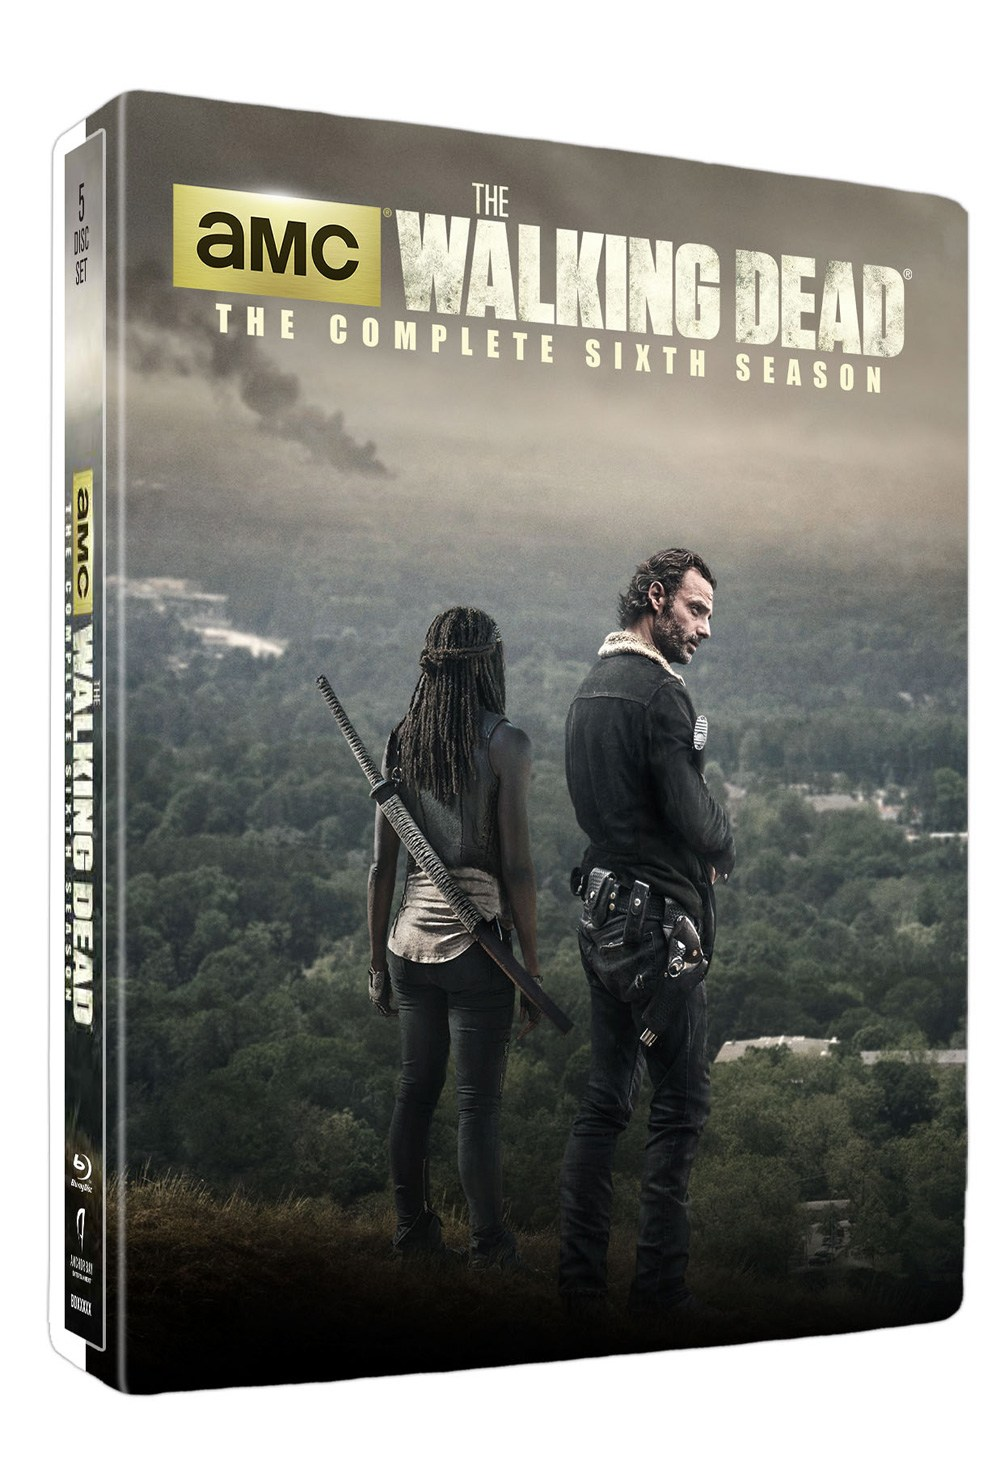 Walking Dead S6 Steelbook 3D - Season Six Featurette #1: A Minute With Richonne